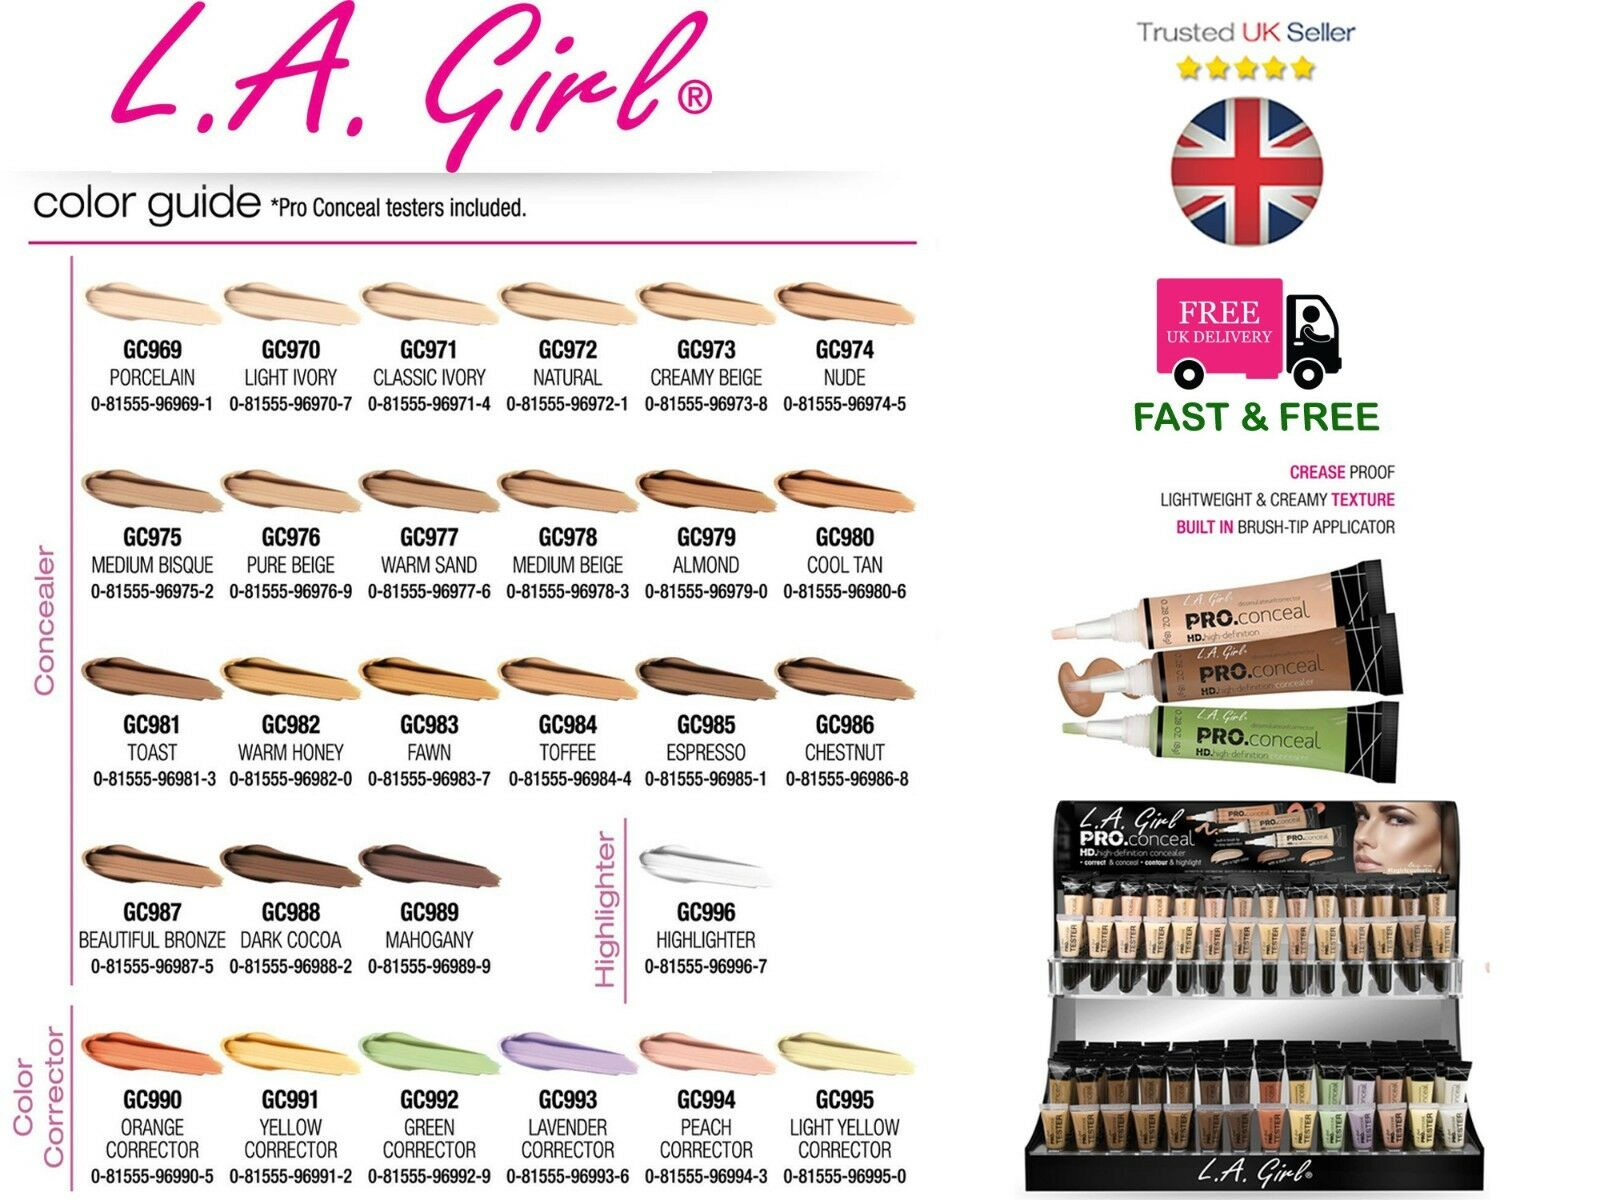 LA GIRL PRO CONCEALER -100% AUTHENTIC- UK SELLER- 28 SHADES-*** UP TO 10% OFF